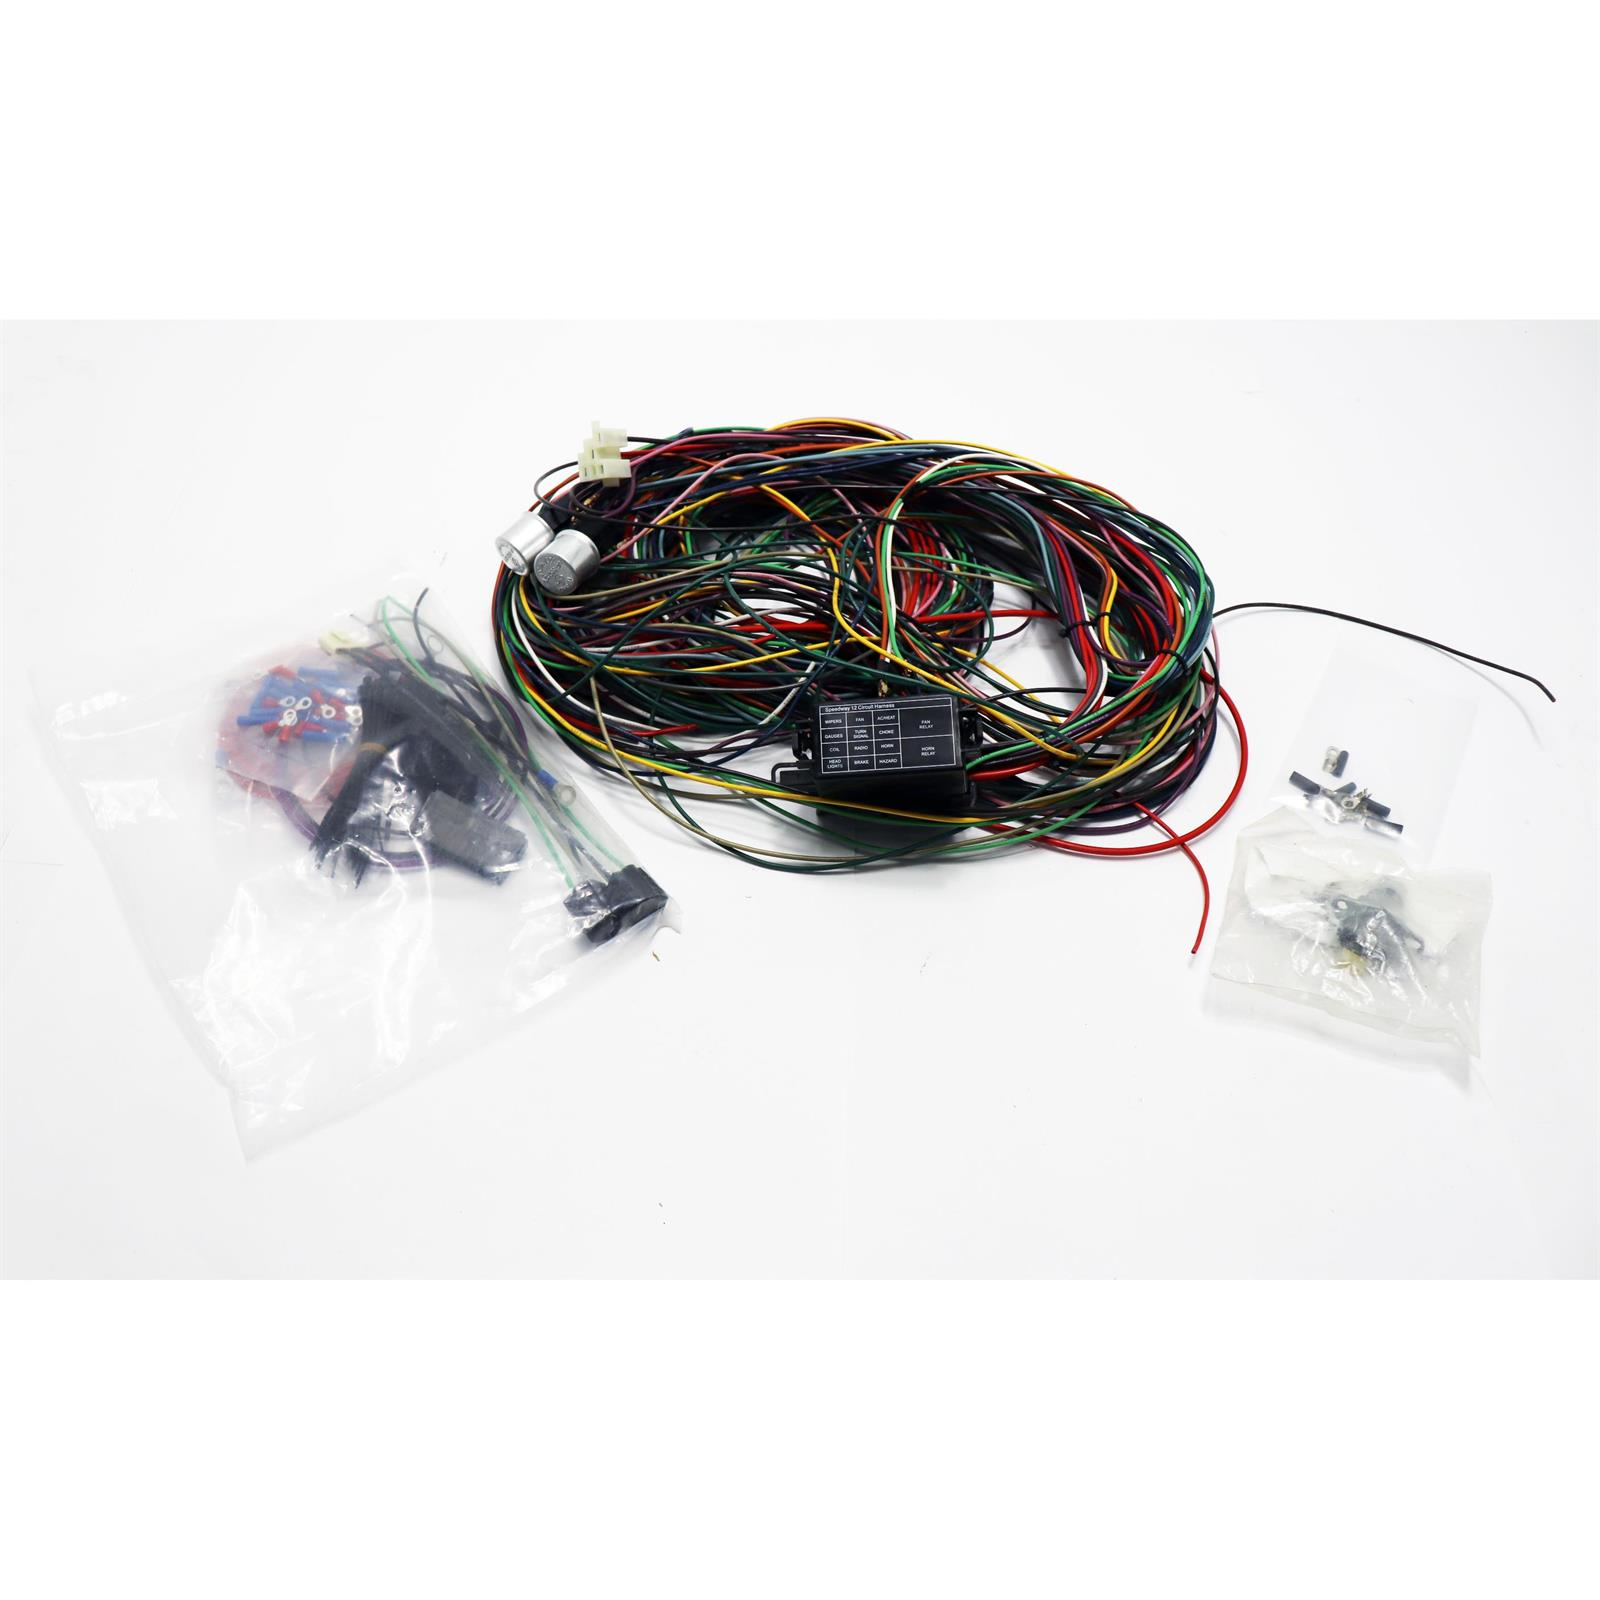 speedway economy 12 circuit wiring harness rh speedwaymotors com 2007 Chevy  Express Fuse Diagrams GM Fuse